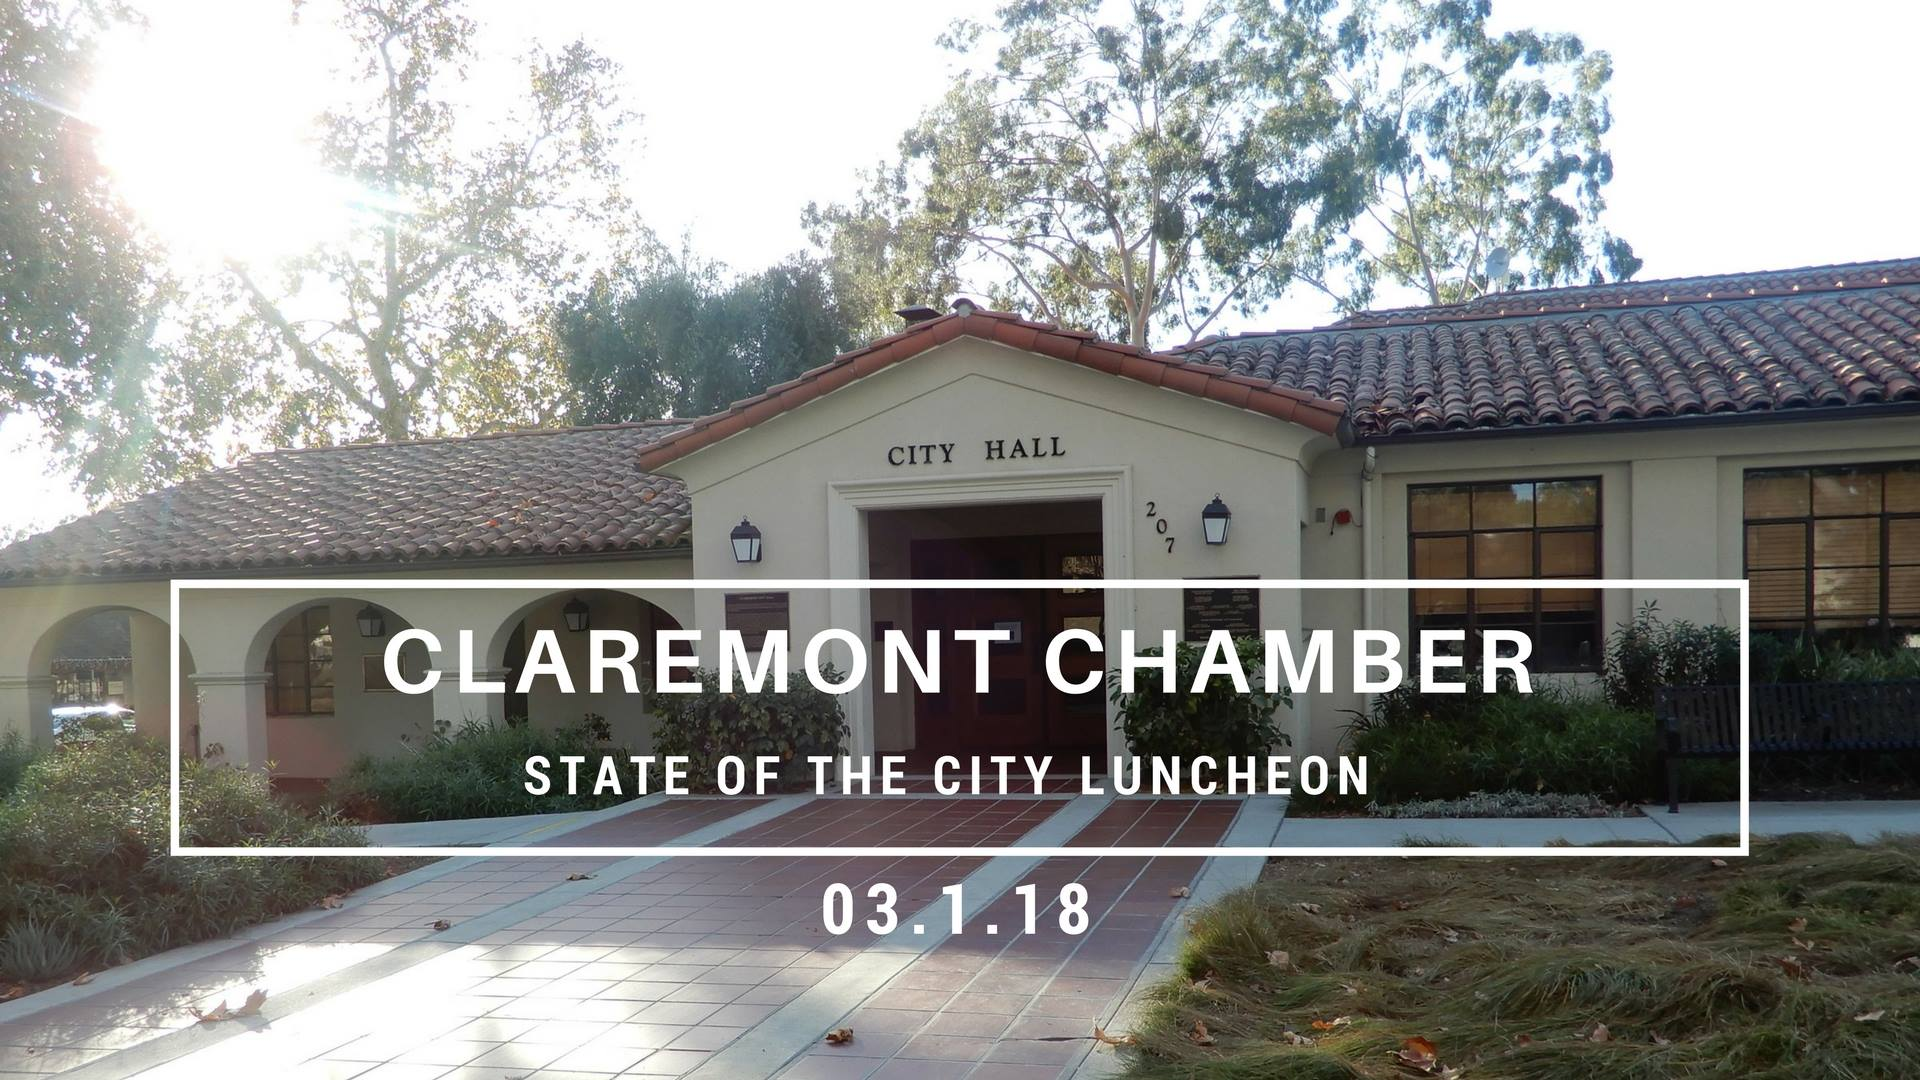 Claremont Chamber State of the City Luncheon